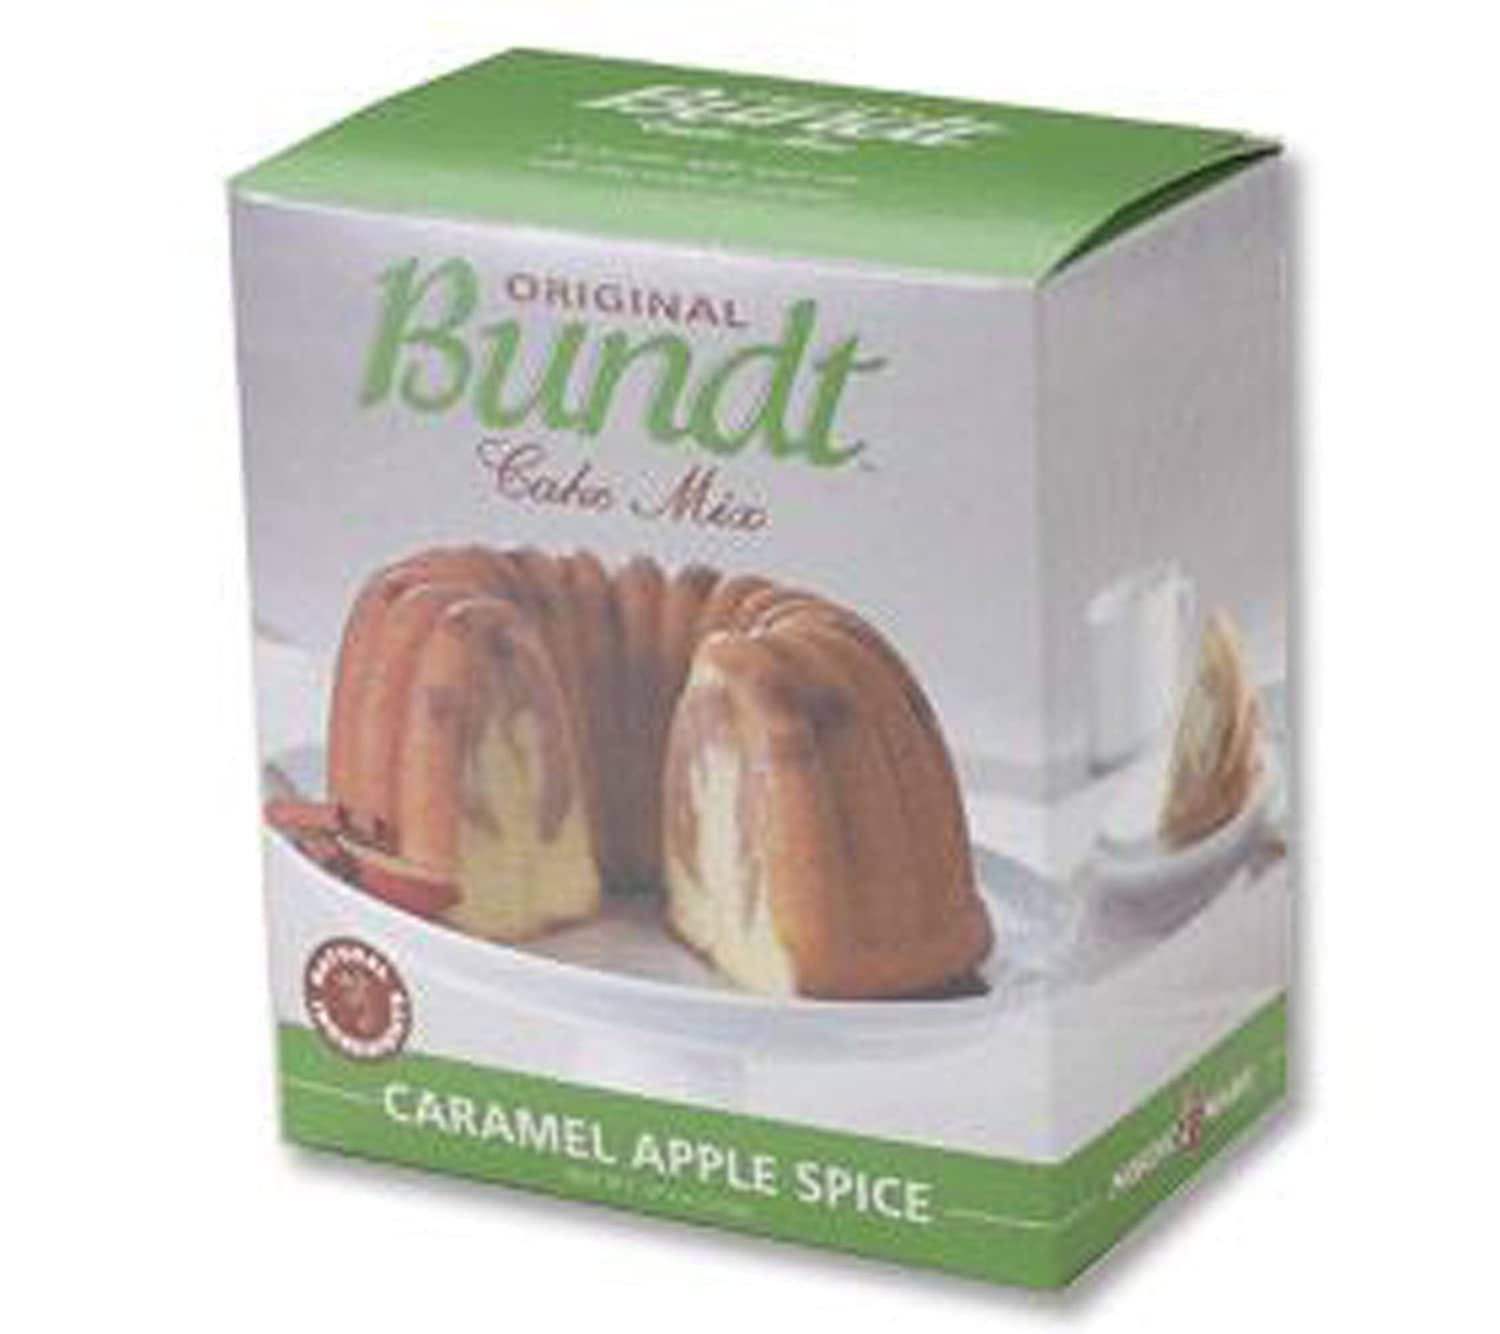 Nordic Ware Original Bundt Mixes